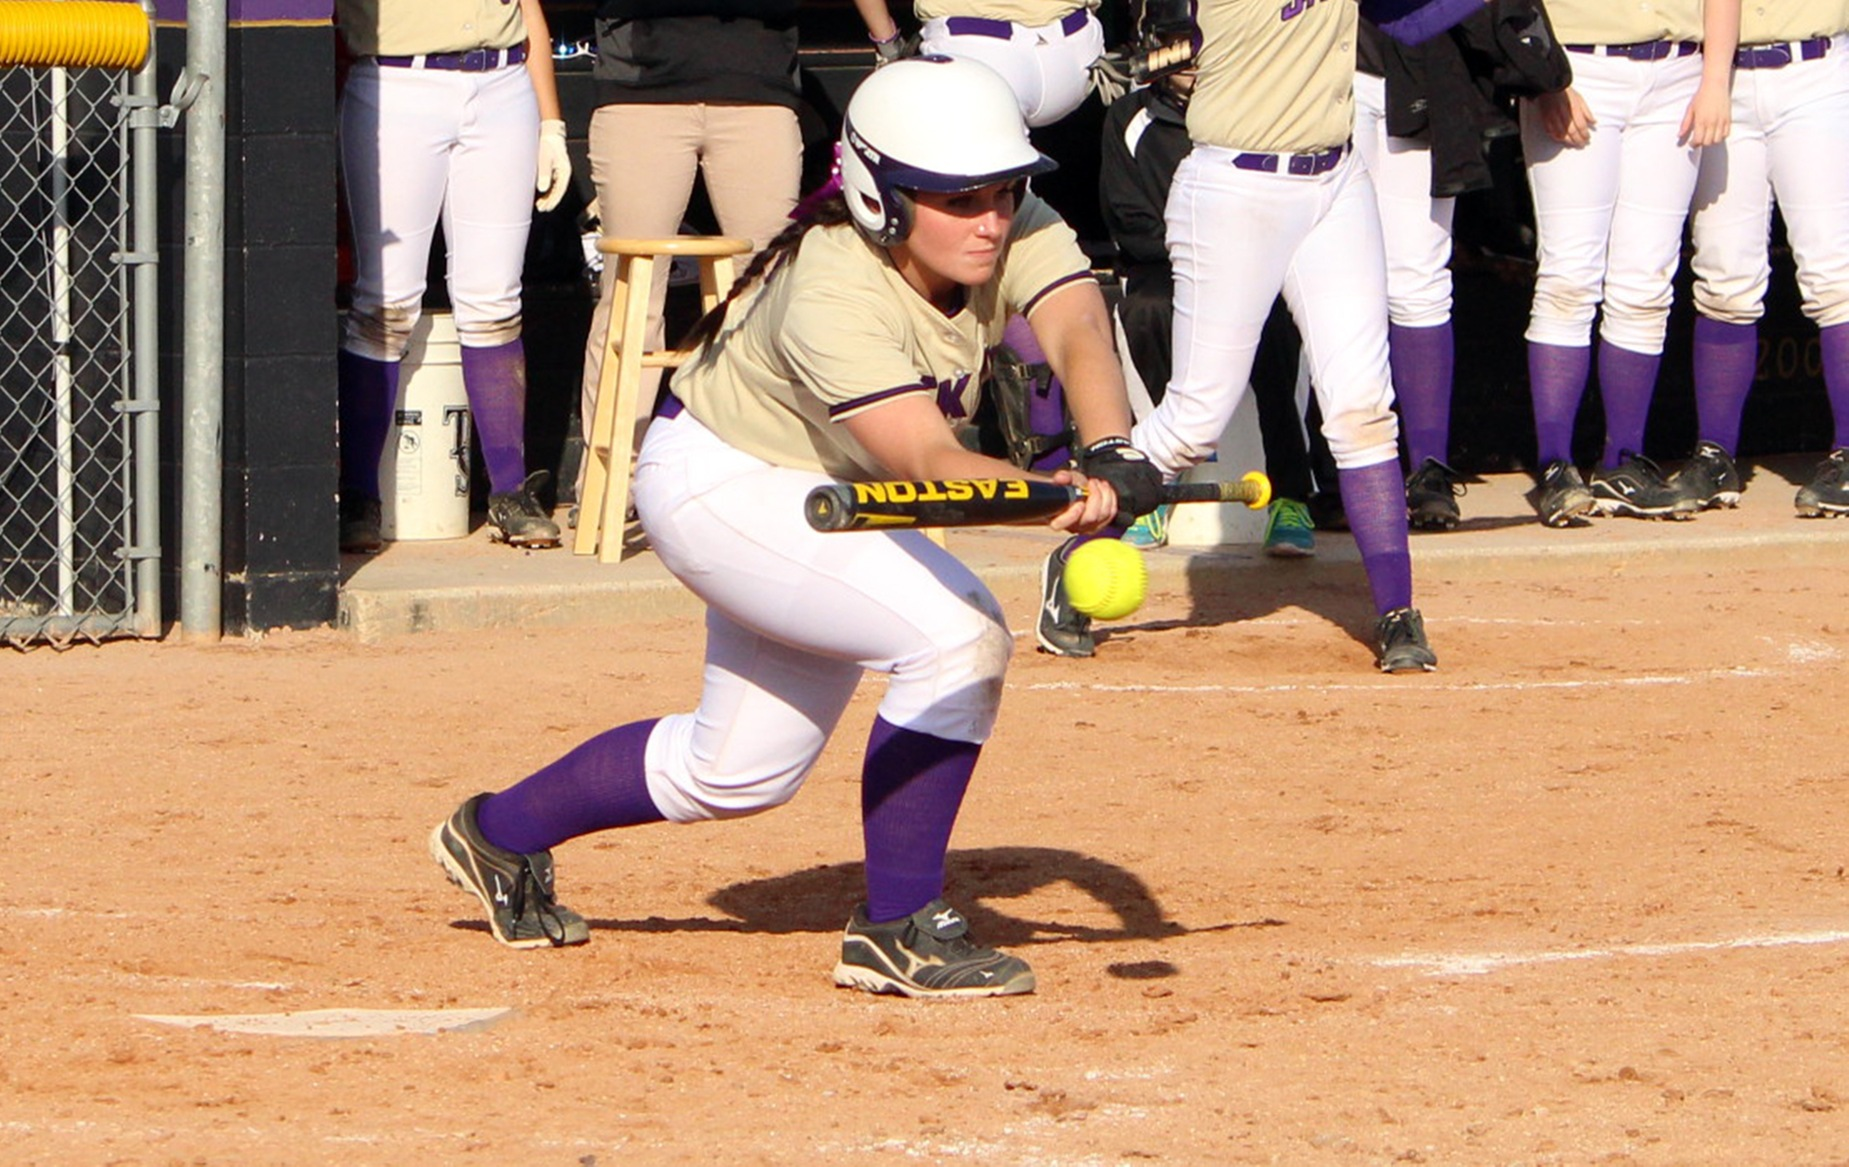 Softball drops pair versus Adrian to close homestand